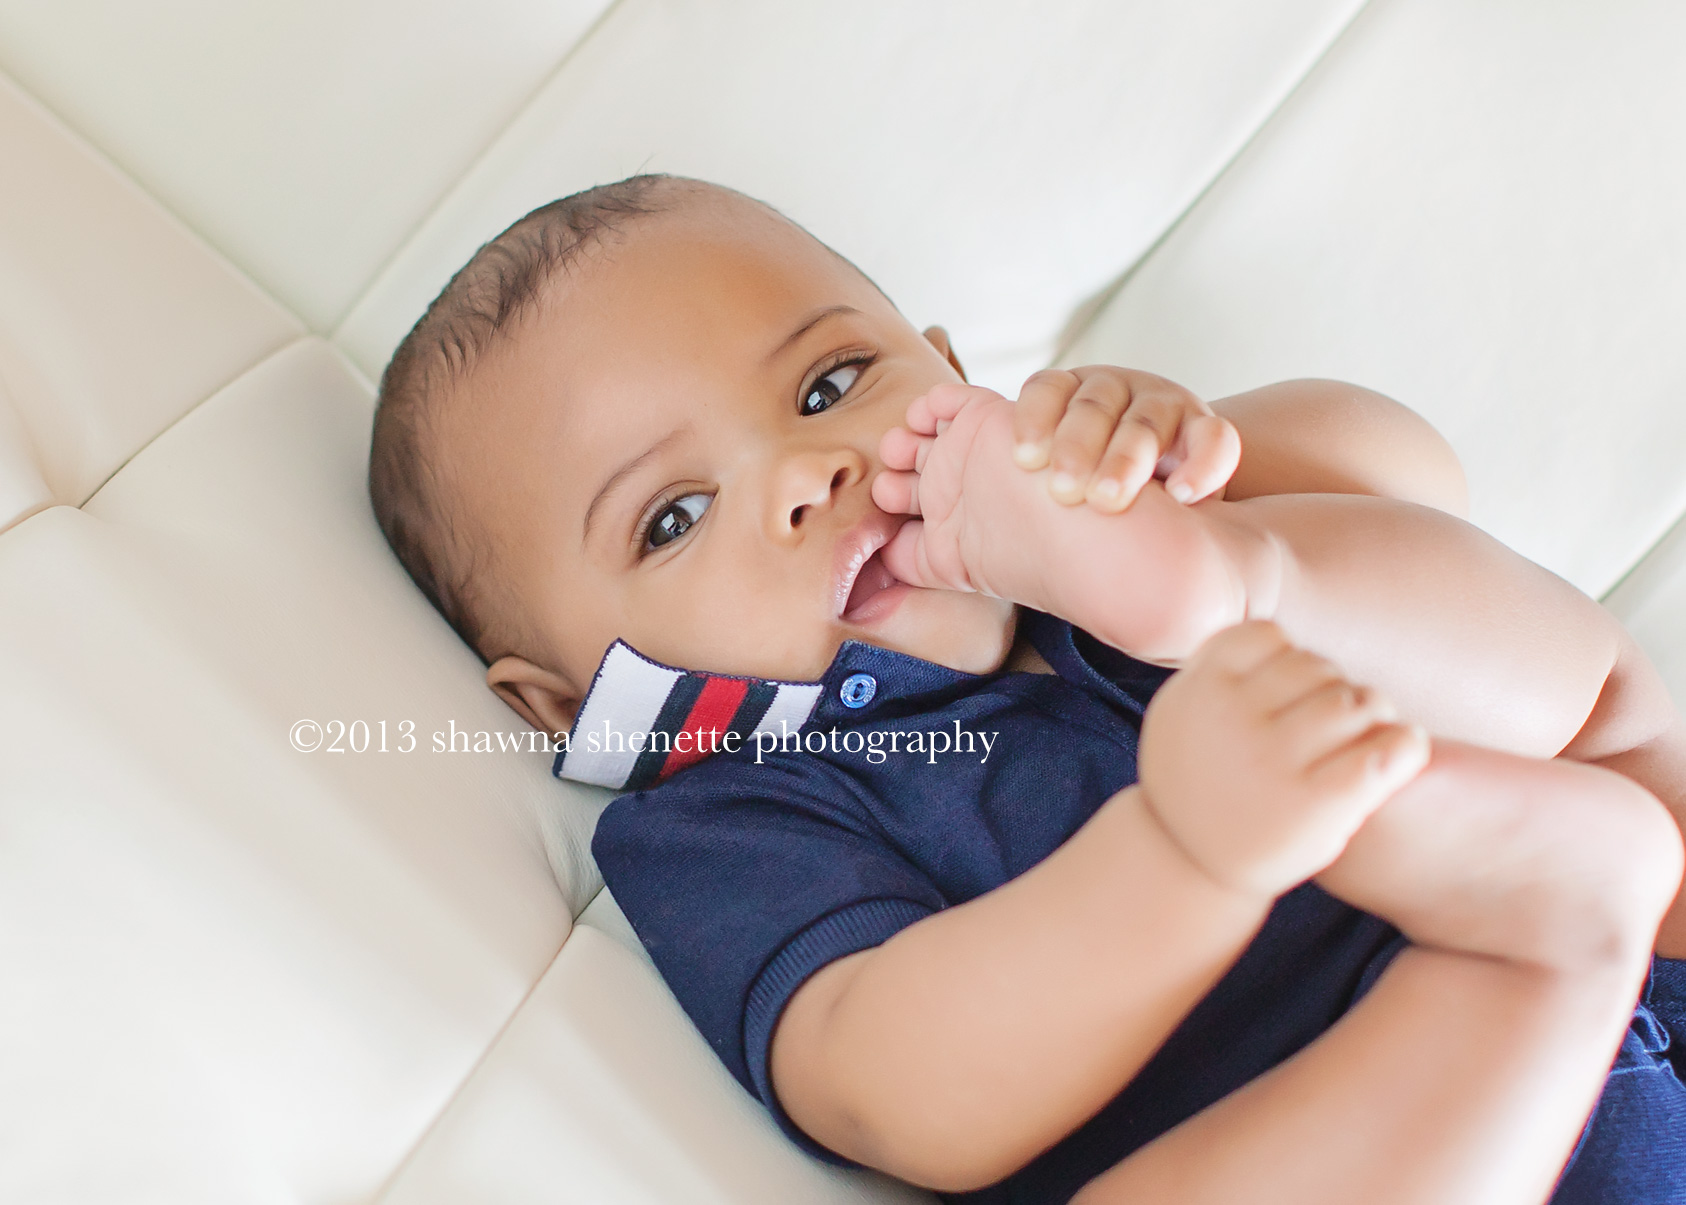 Central Massachusetts Baby Photographer 6 Months Old Studio Baby Sessions